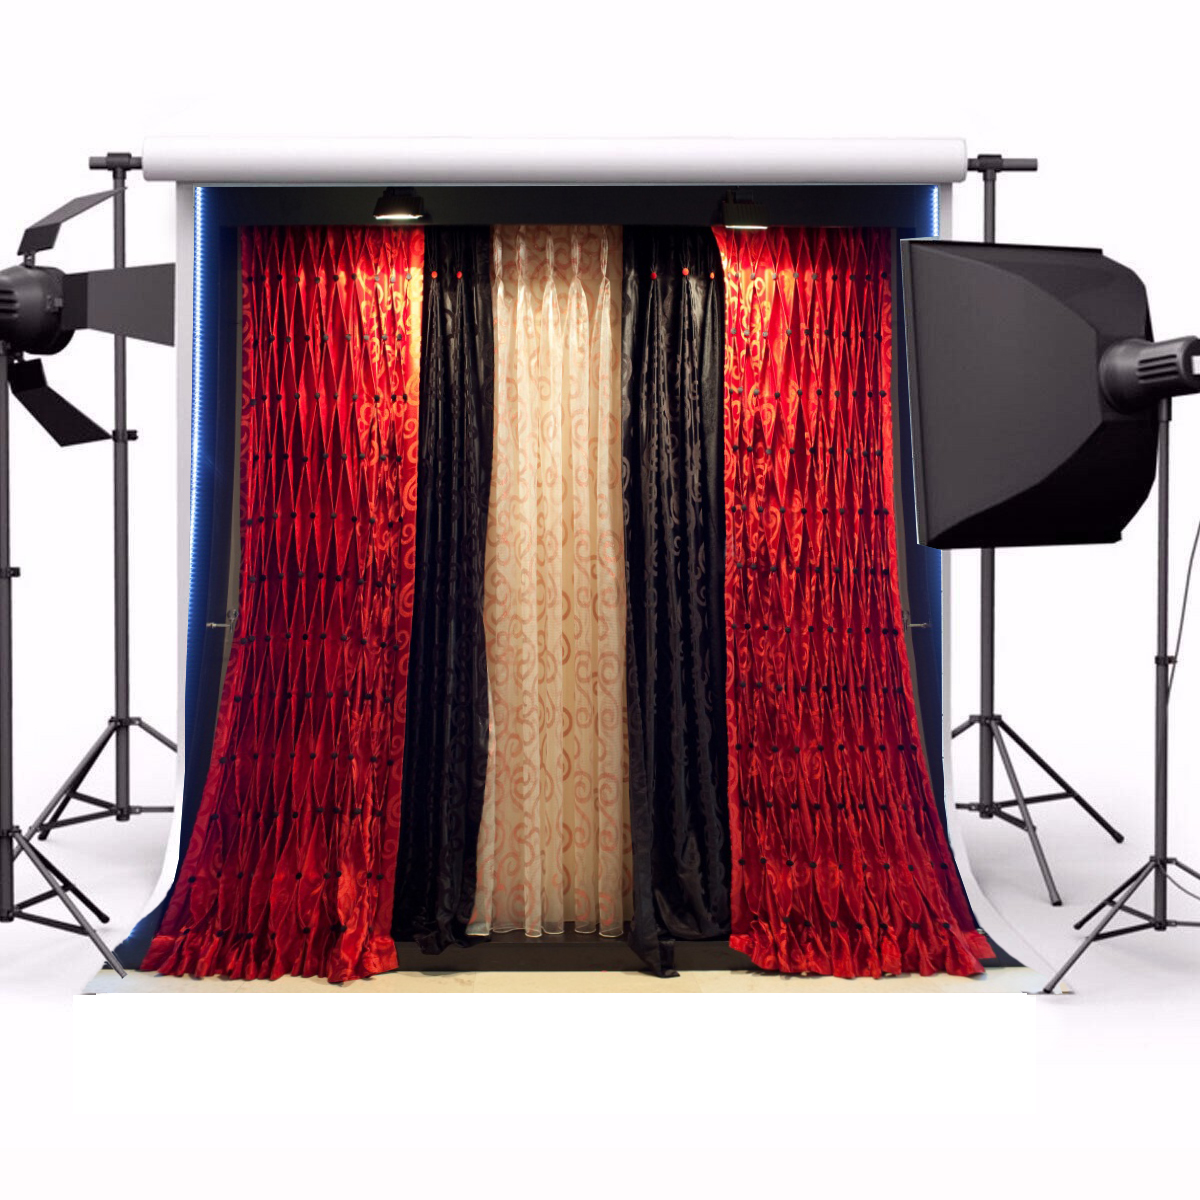 Colorful Bedroom Curtains Night Photo Backgrounds 10x10FT Vinyl